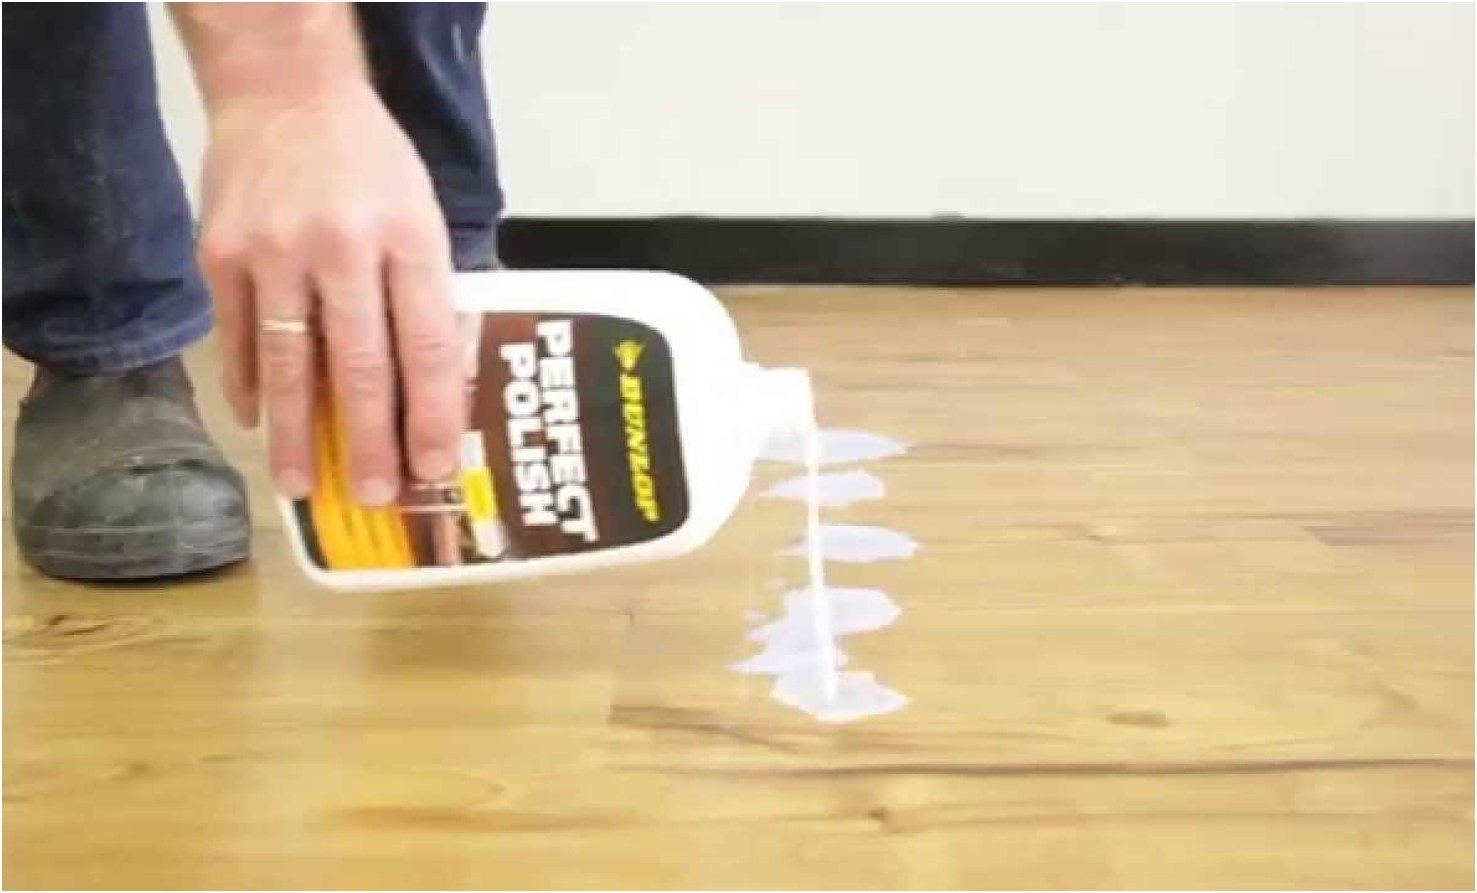 repair kit for hardwood floor of how to replace a piece of laminate flooring galerie amazon dritac within how to replace a piece of laminate flooring galerie how to stain a hardwood floor awesome